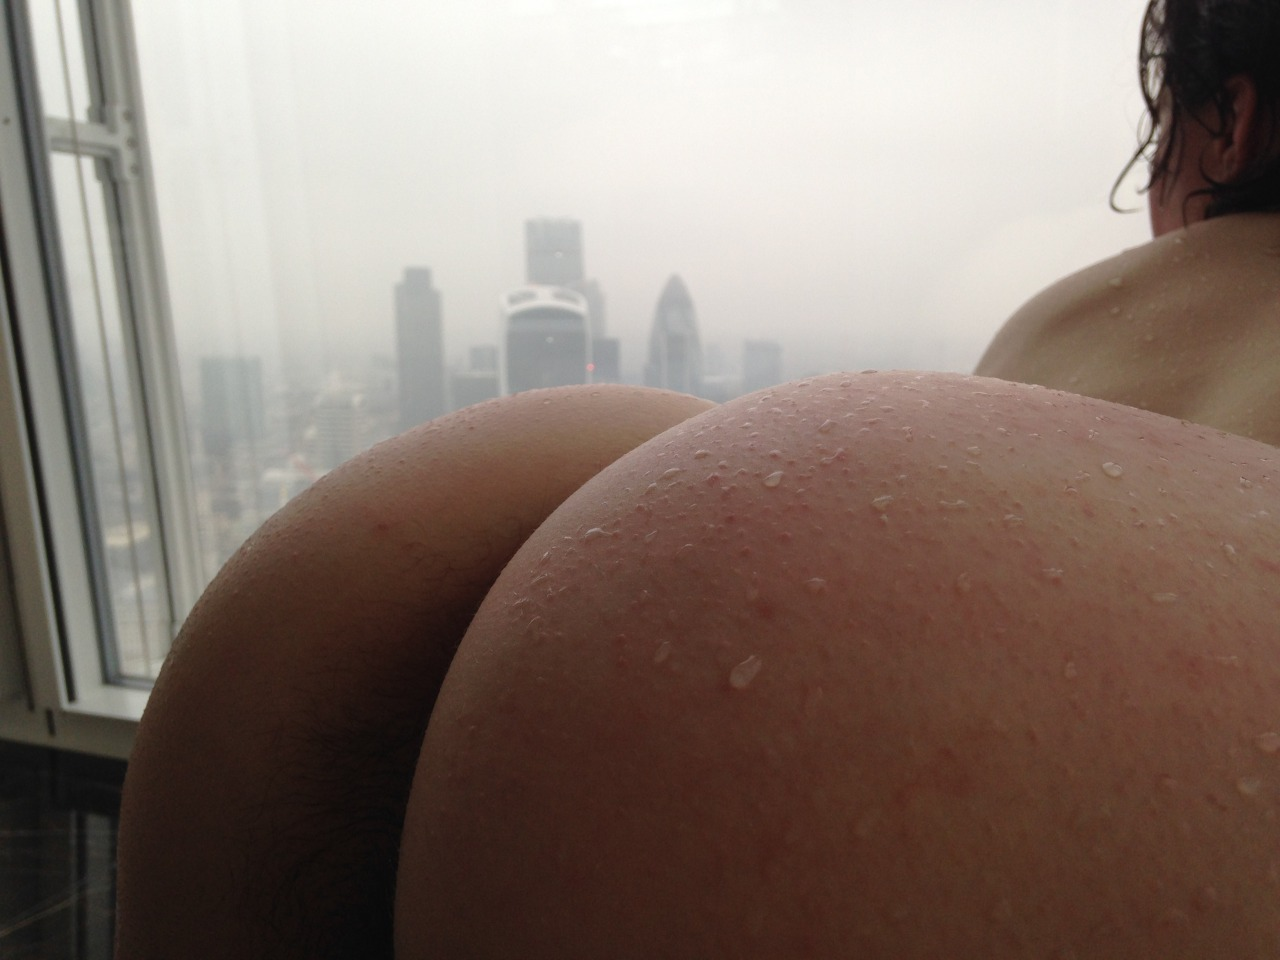 nice shot from camwithkitten